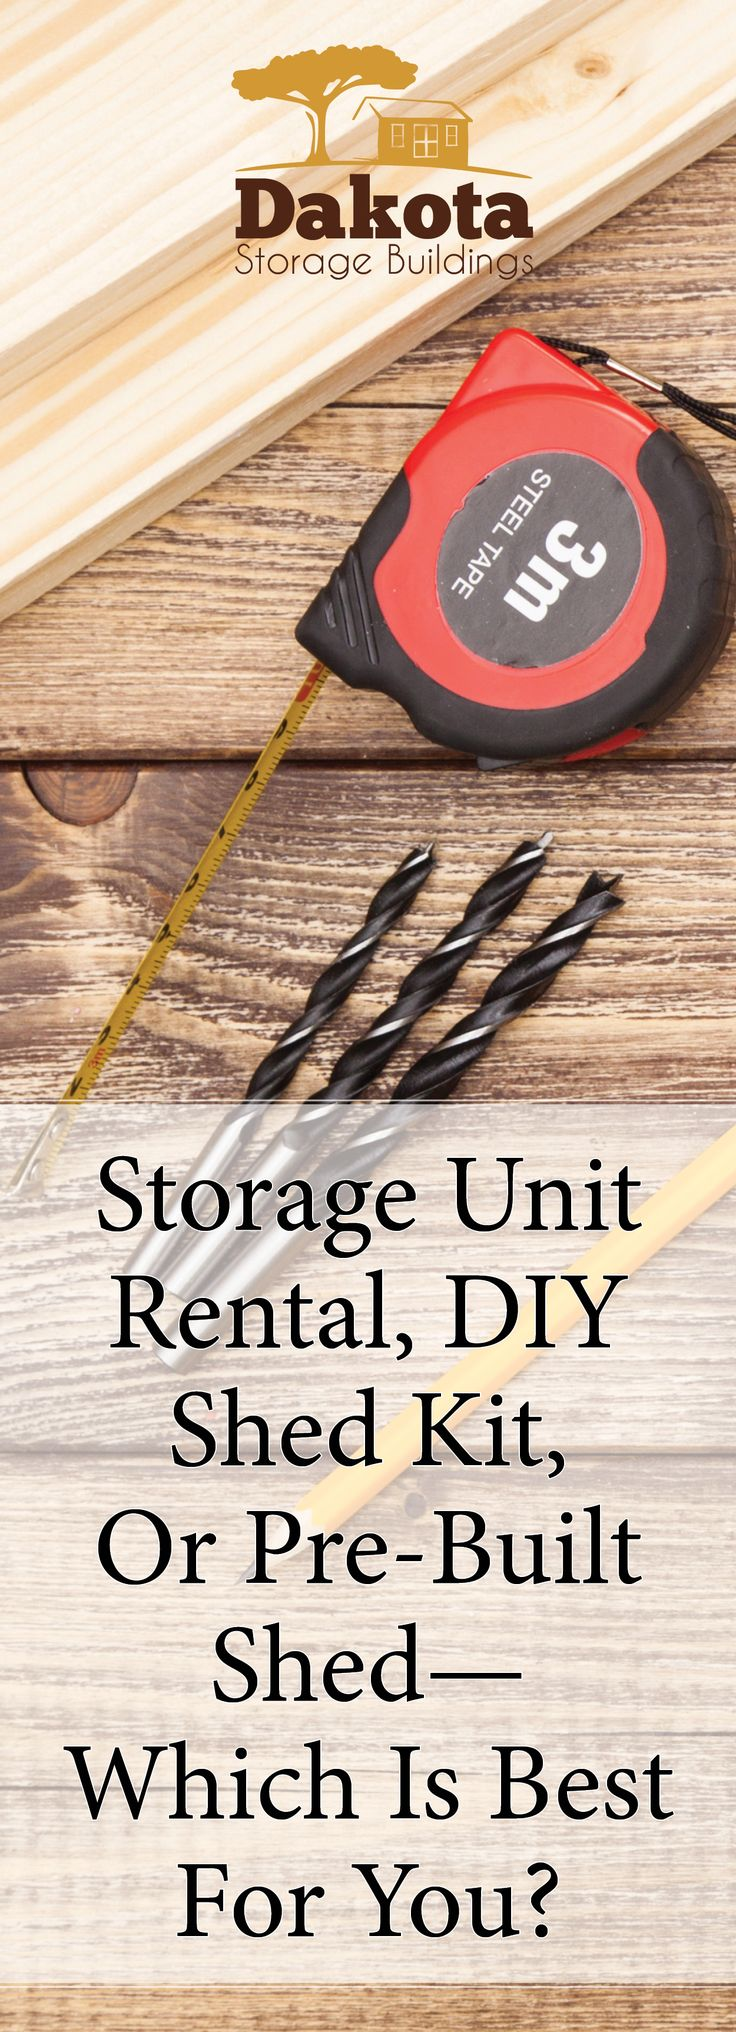 Here are some pros and cons to renting a storage unit, building a DIY shed kit, and buying a pre-built shed—they're laid out in simple, easy-to-read lists. https://www.dakotastorage.com/blog/storage-unit-rental-diy-shed-kit-or-pre-built-shed-which-is-best-for-you